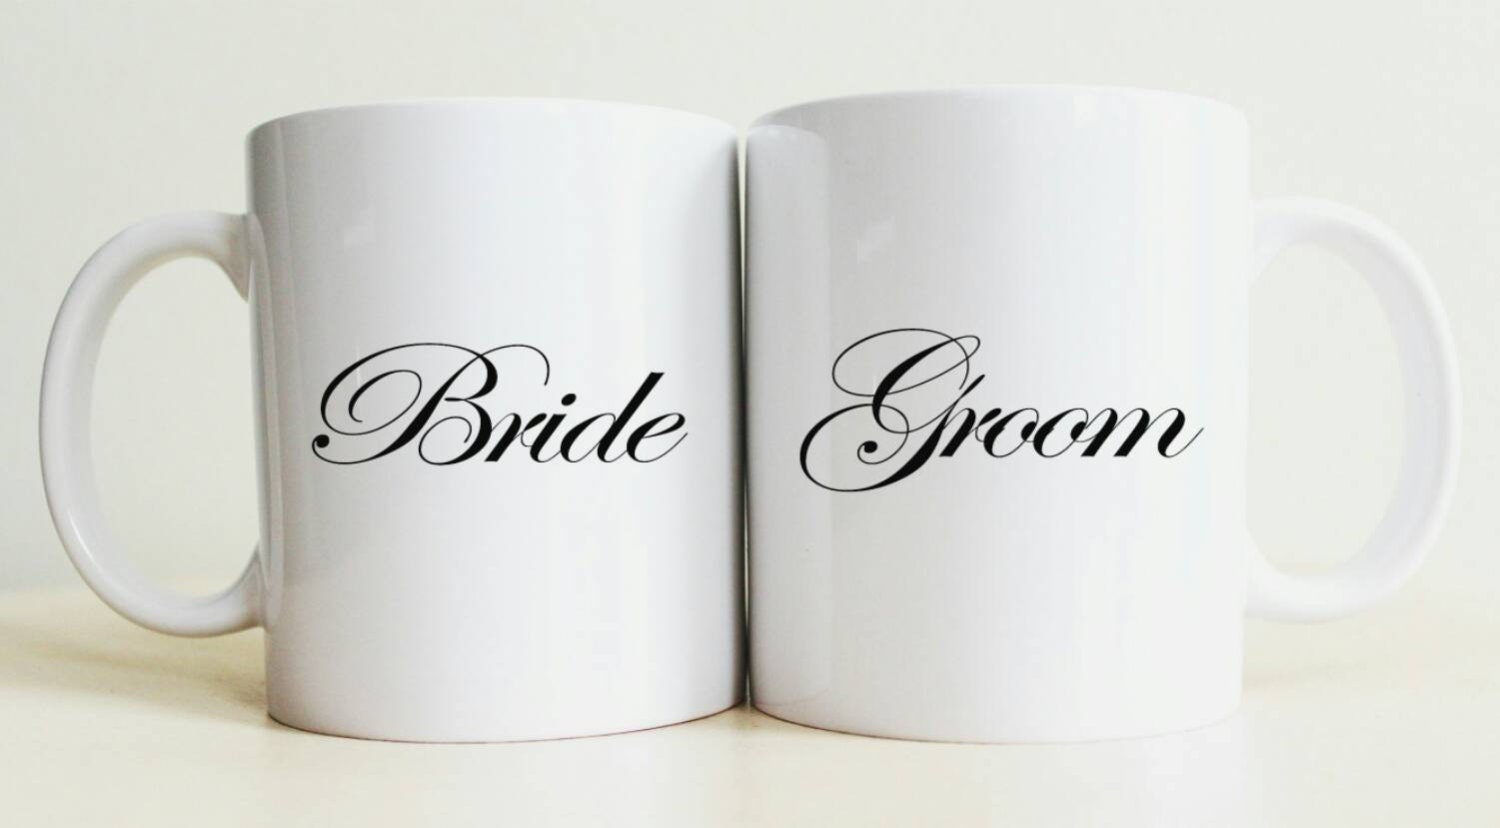 Unusual Wedding Gifts For Bride And Groom: Bride And Groom Mug Set Unique Wedding Gift Custom Bride